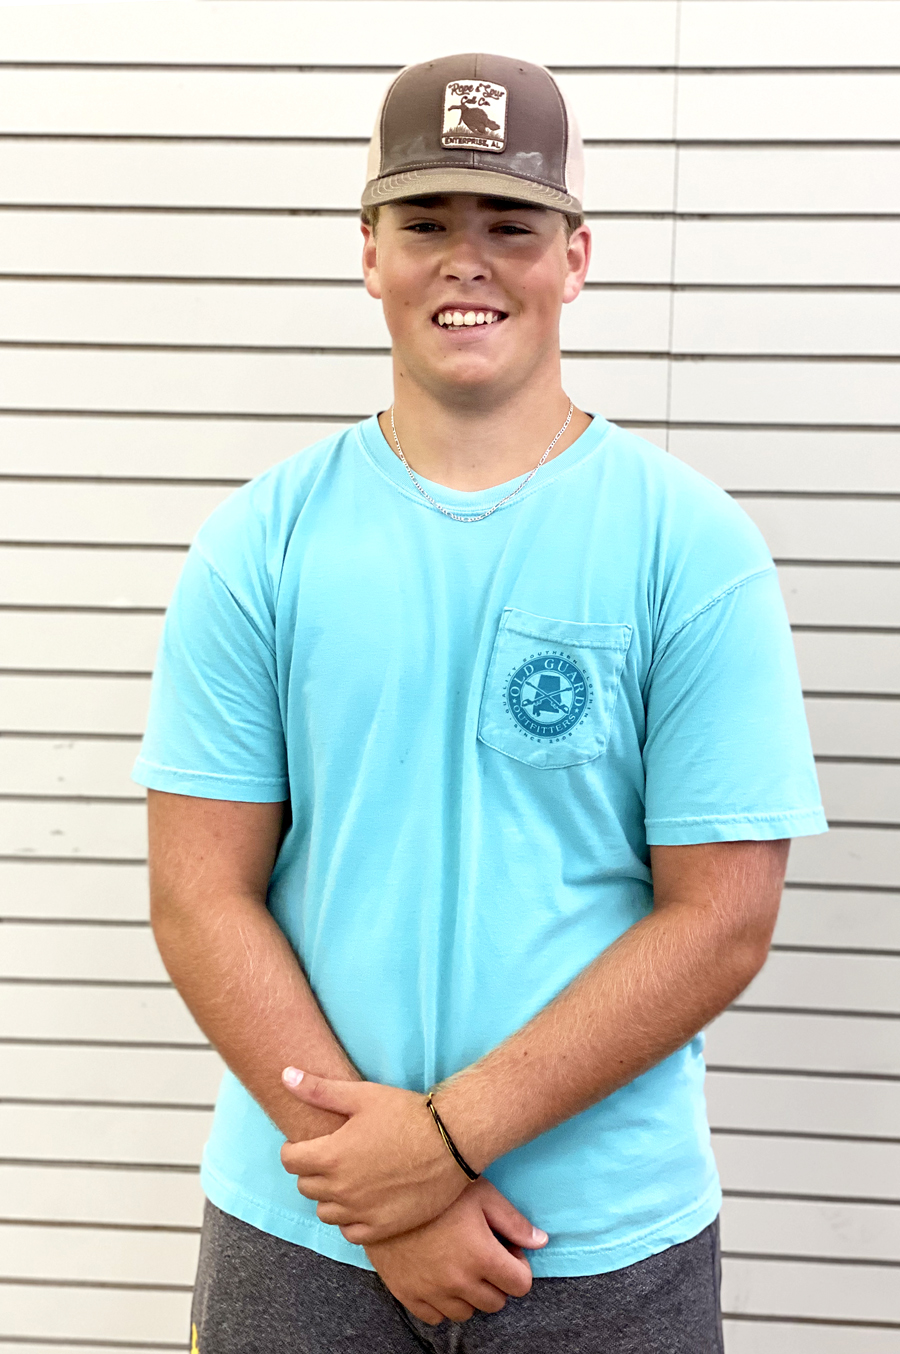 Chandler Pyron is Athlete of the Month for #EncoreRehab Opp